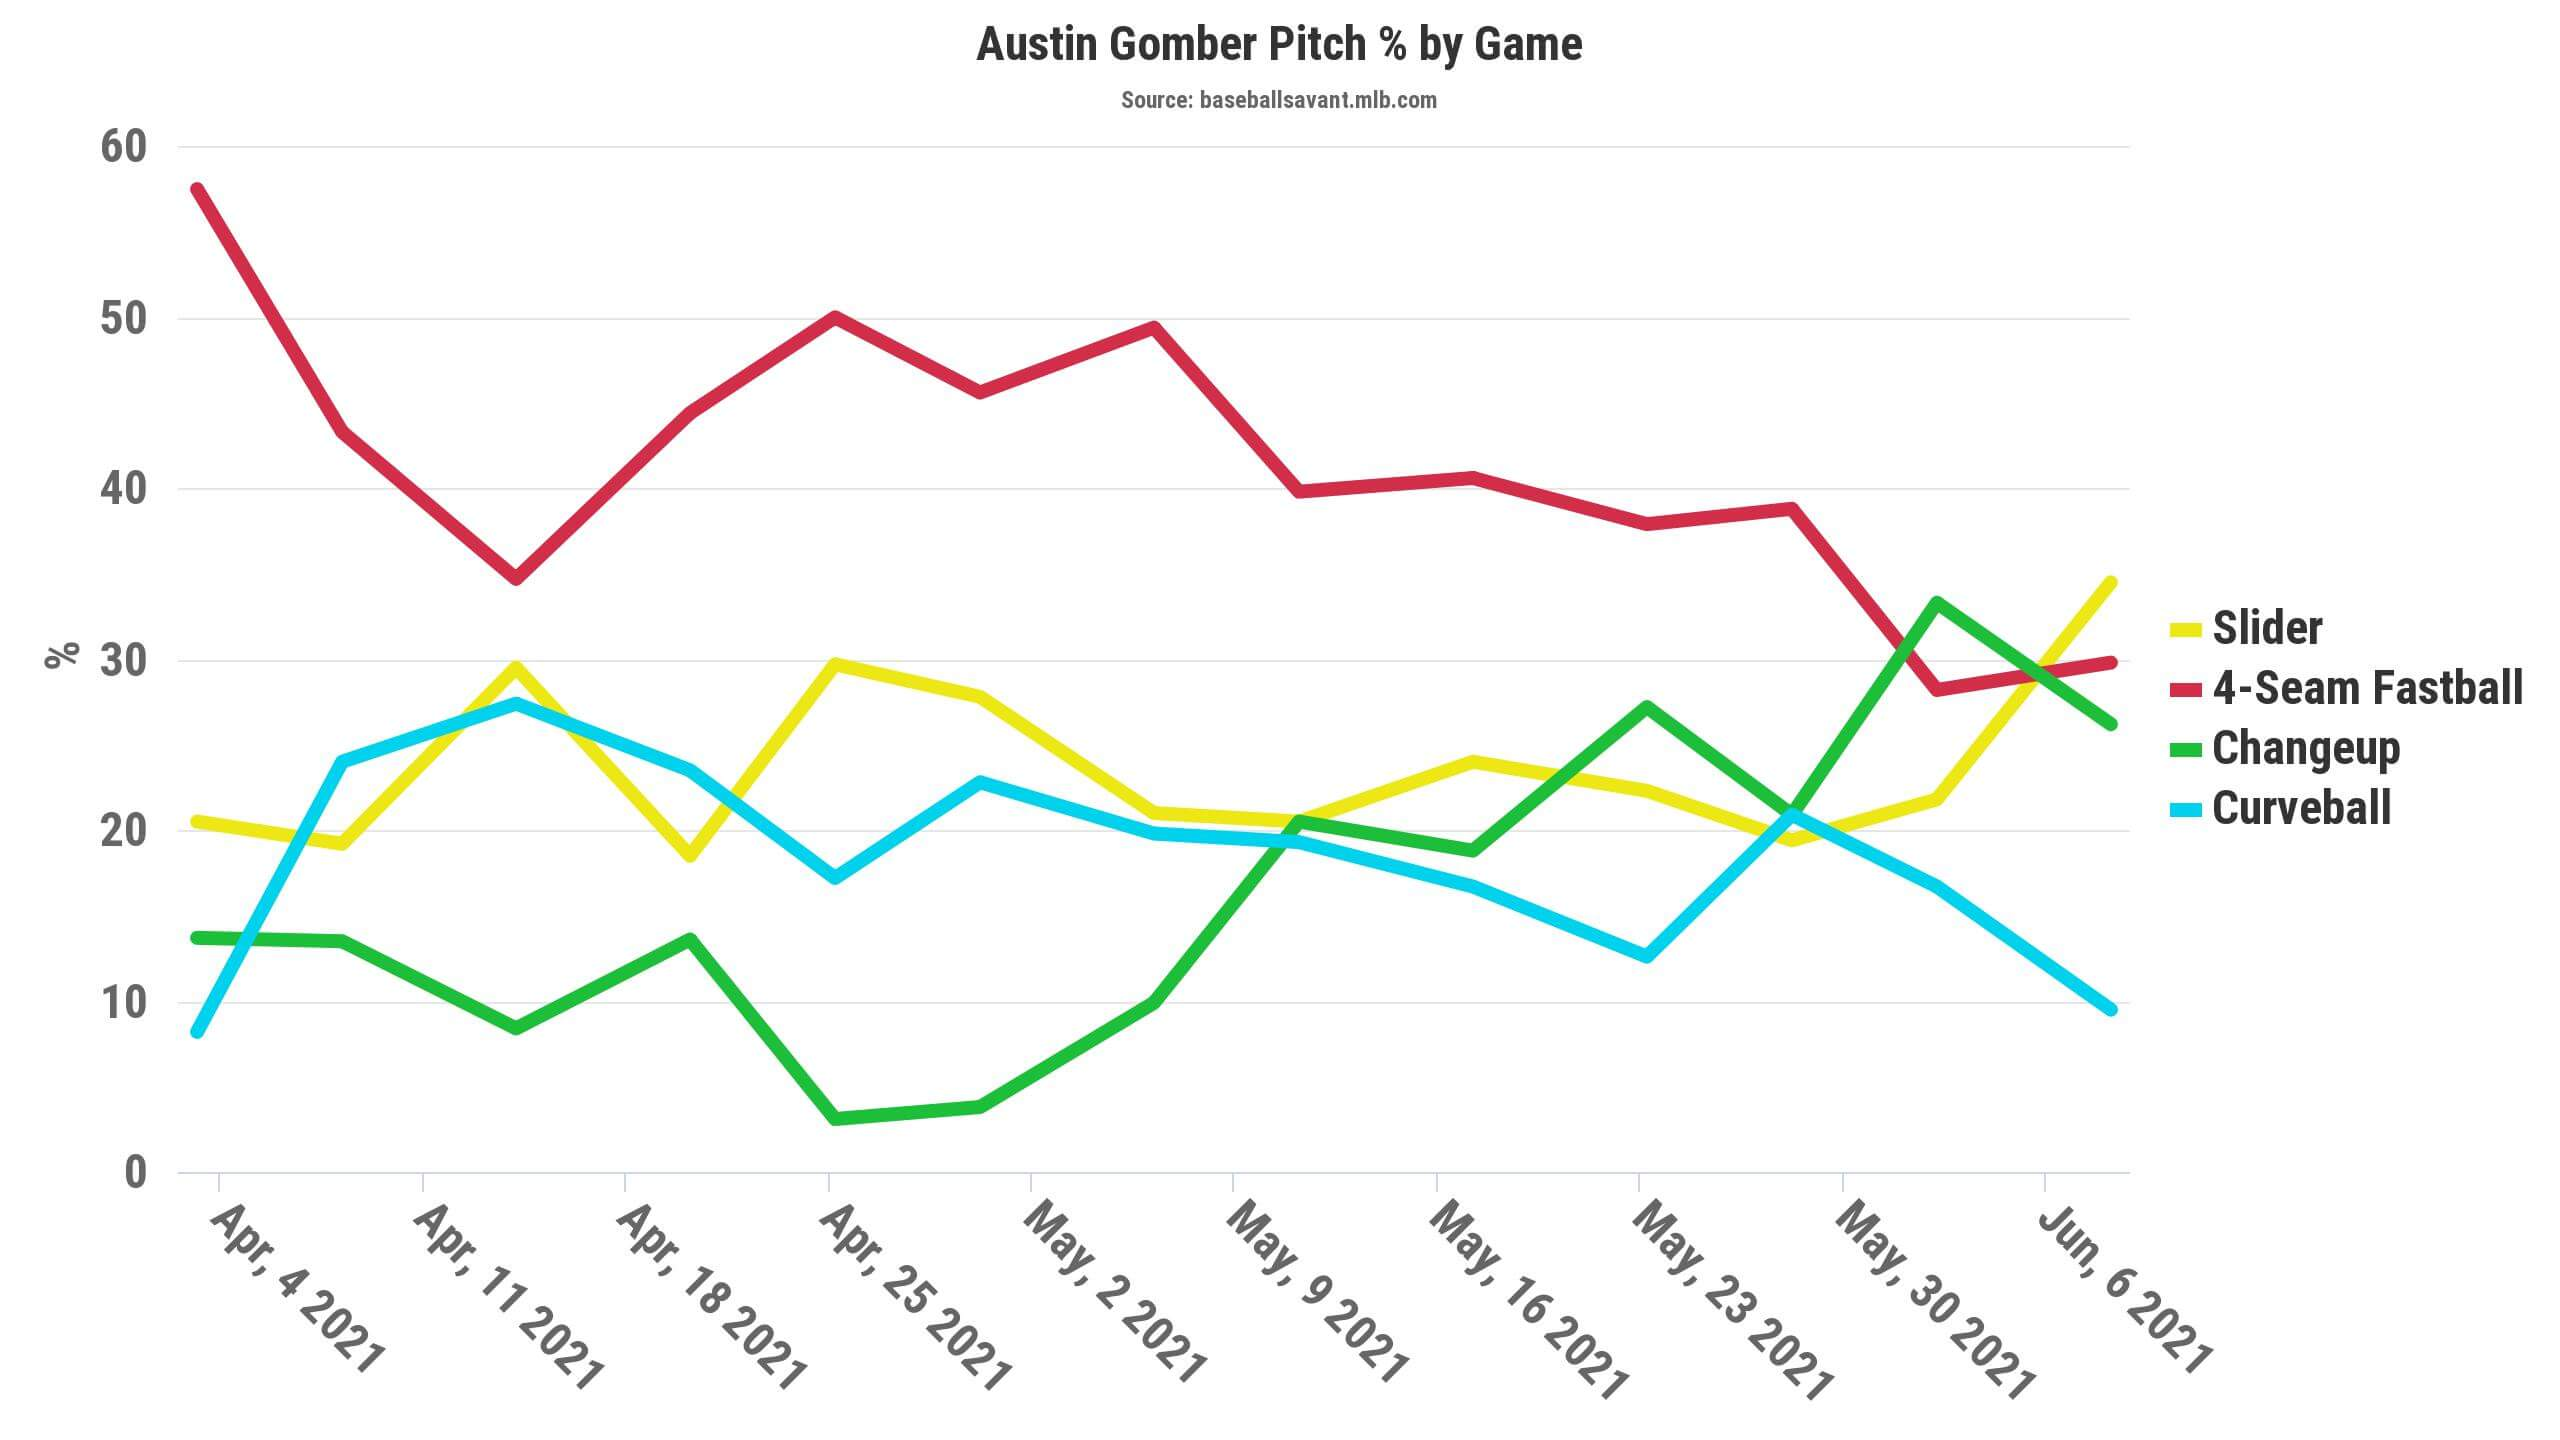 Gomber Pitch Chart